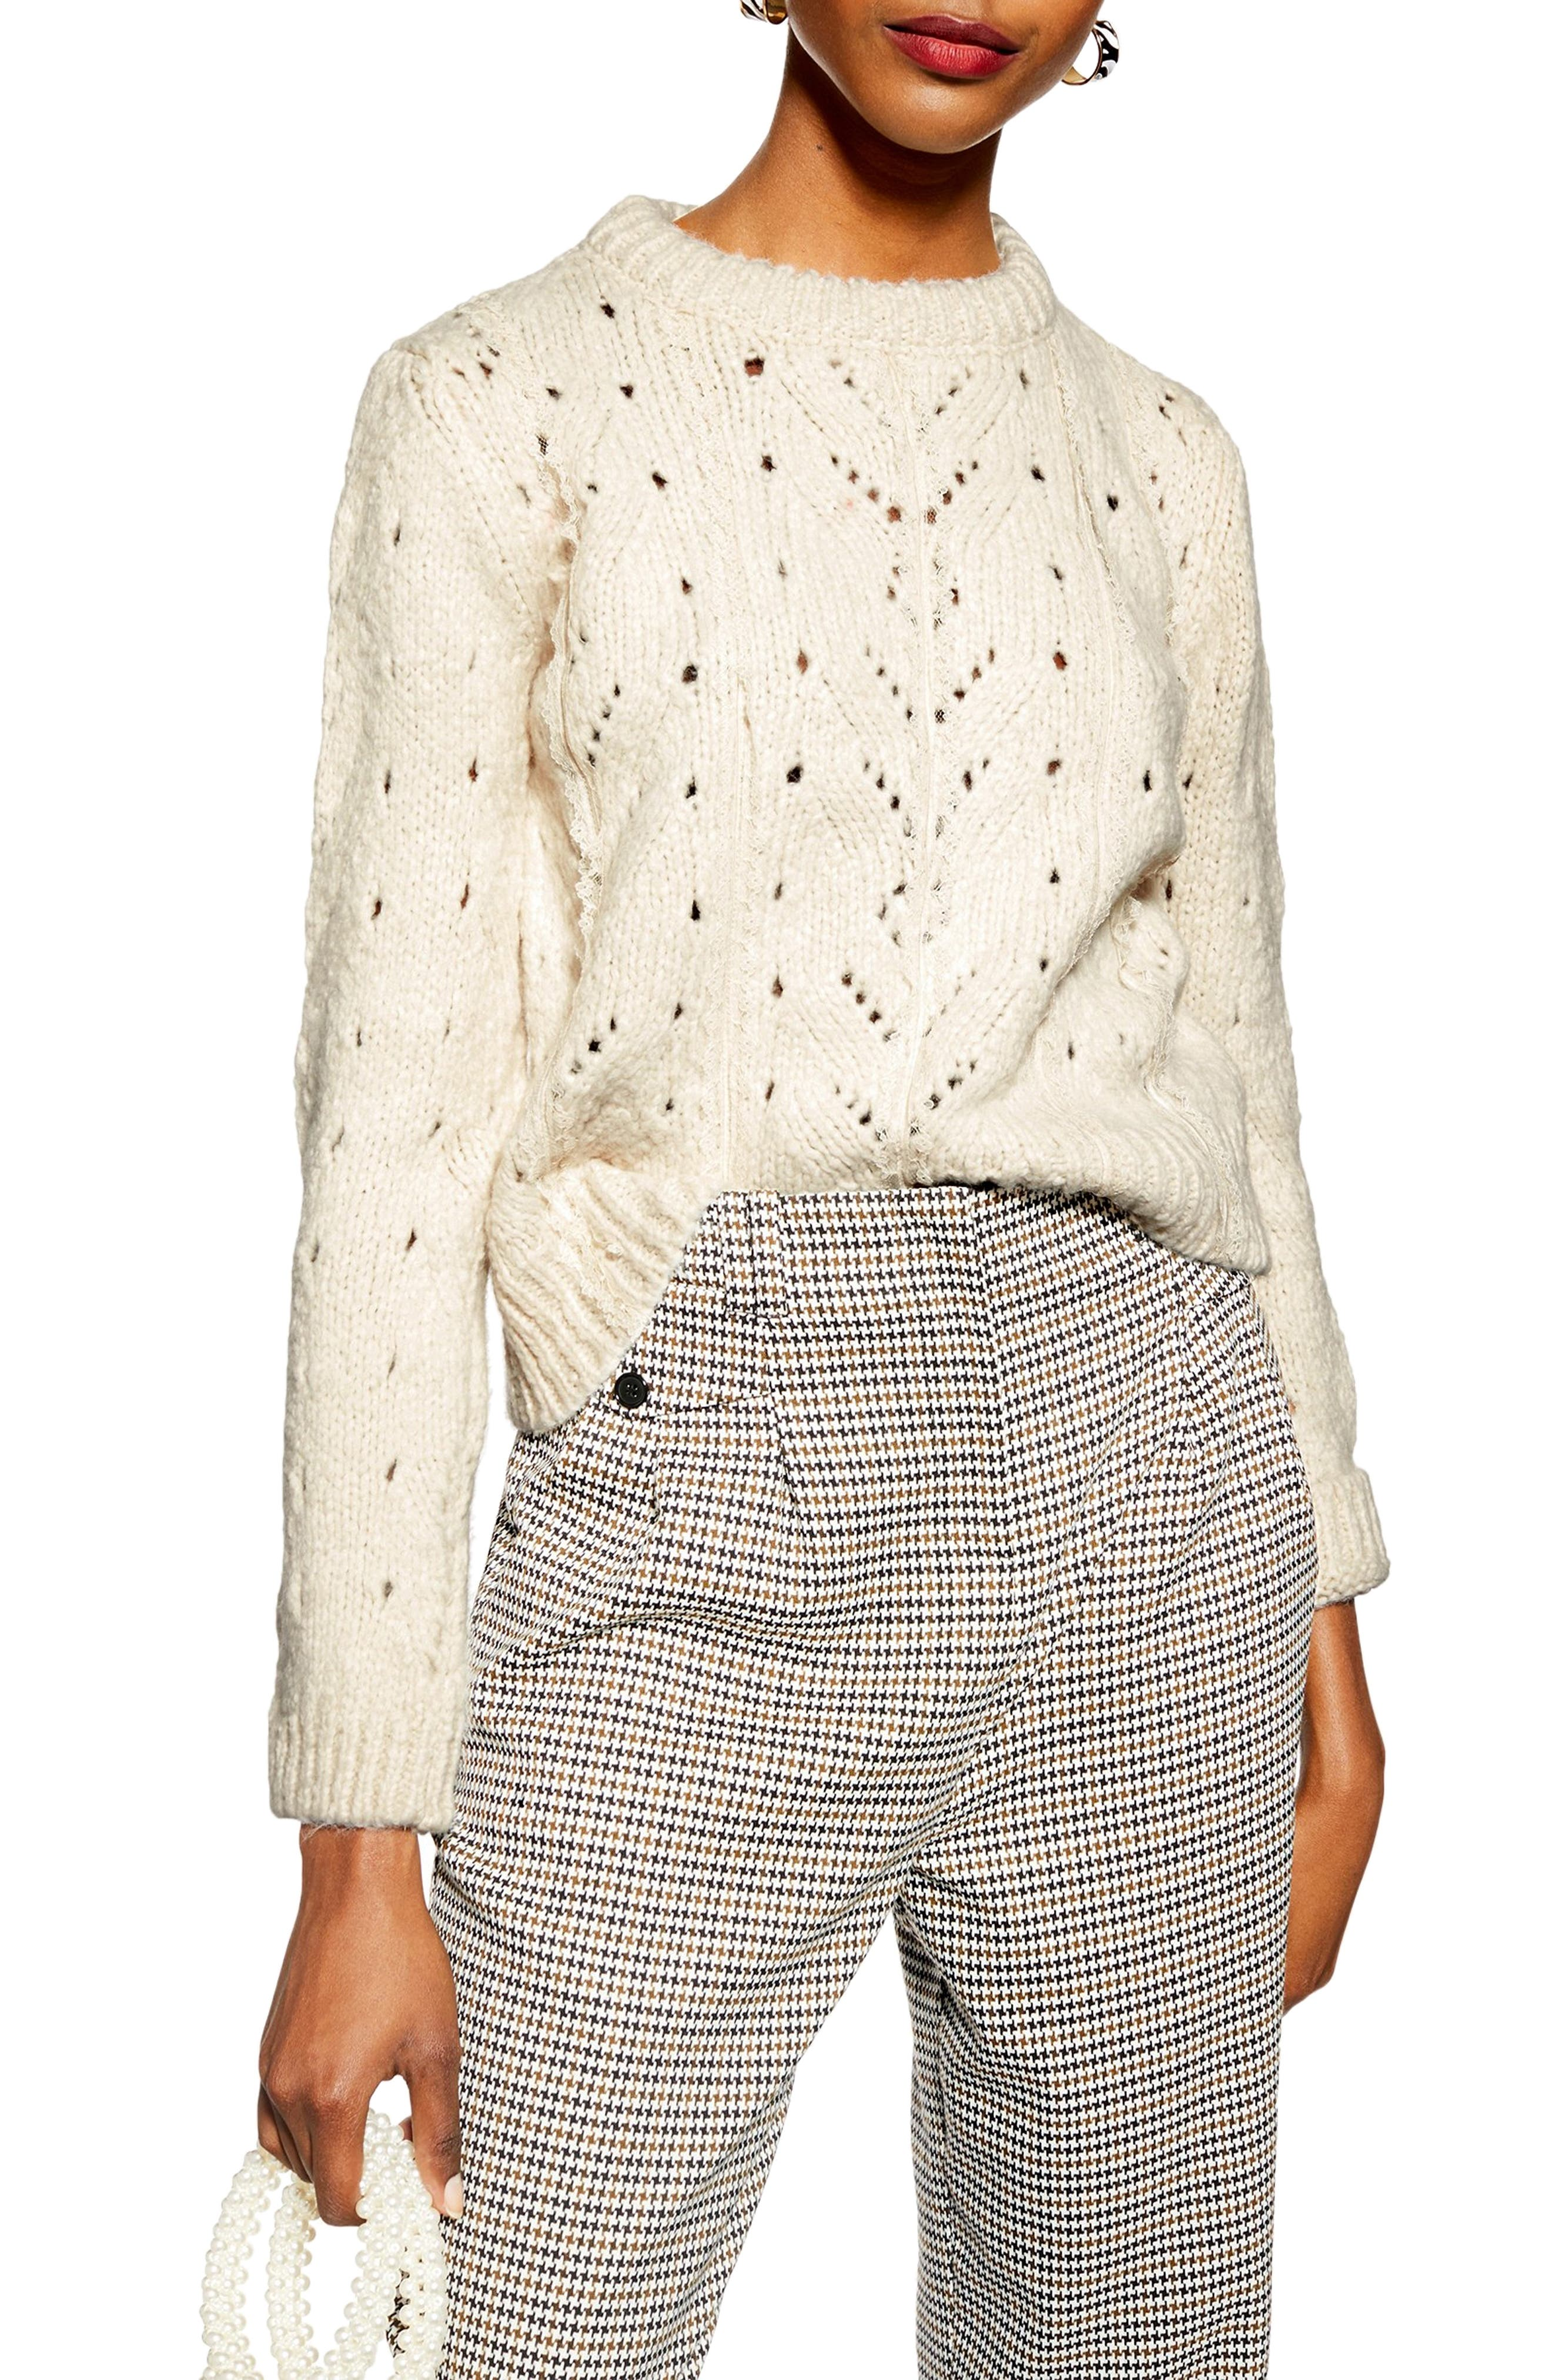 Pointelle Lace Sweater,                             Main thumbnail 1, color,                             IVORY